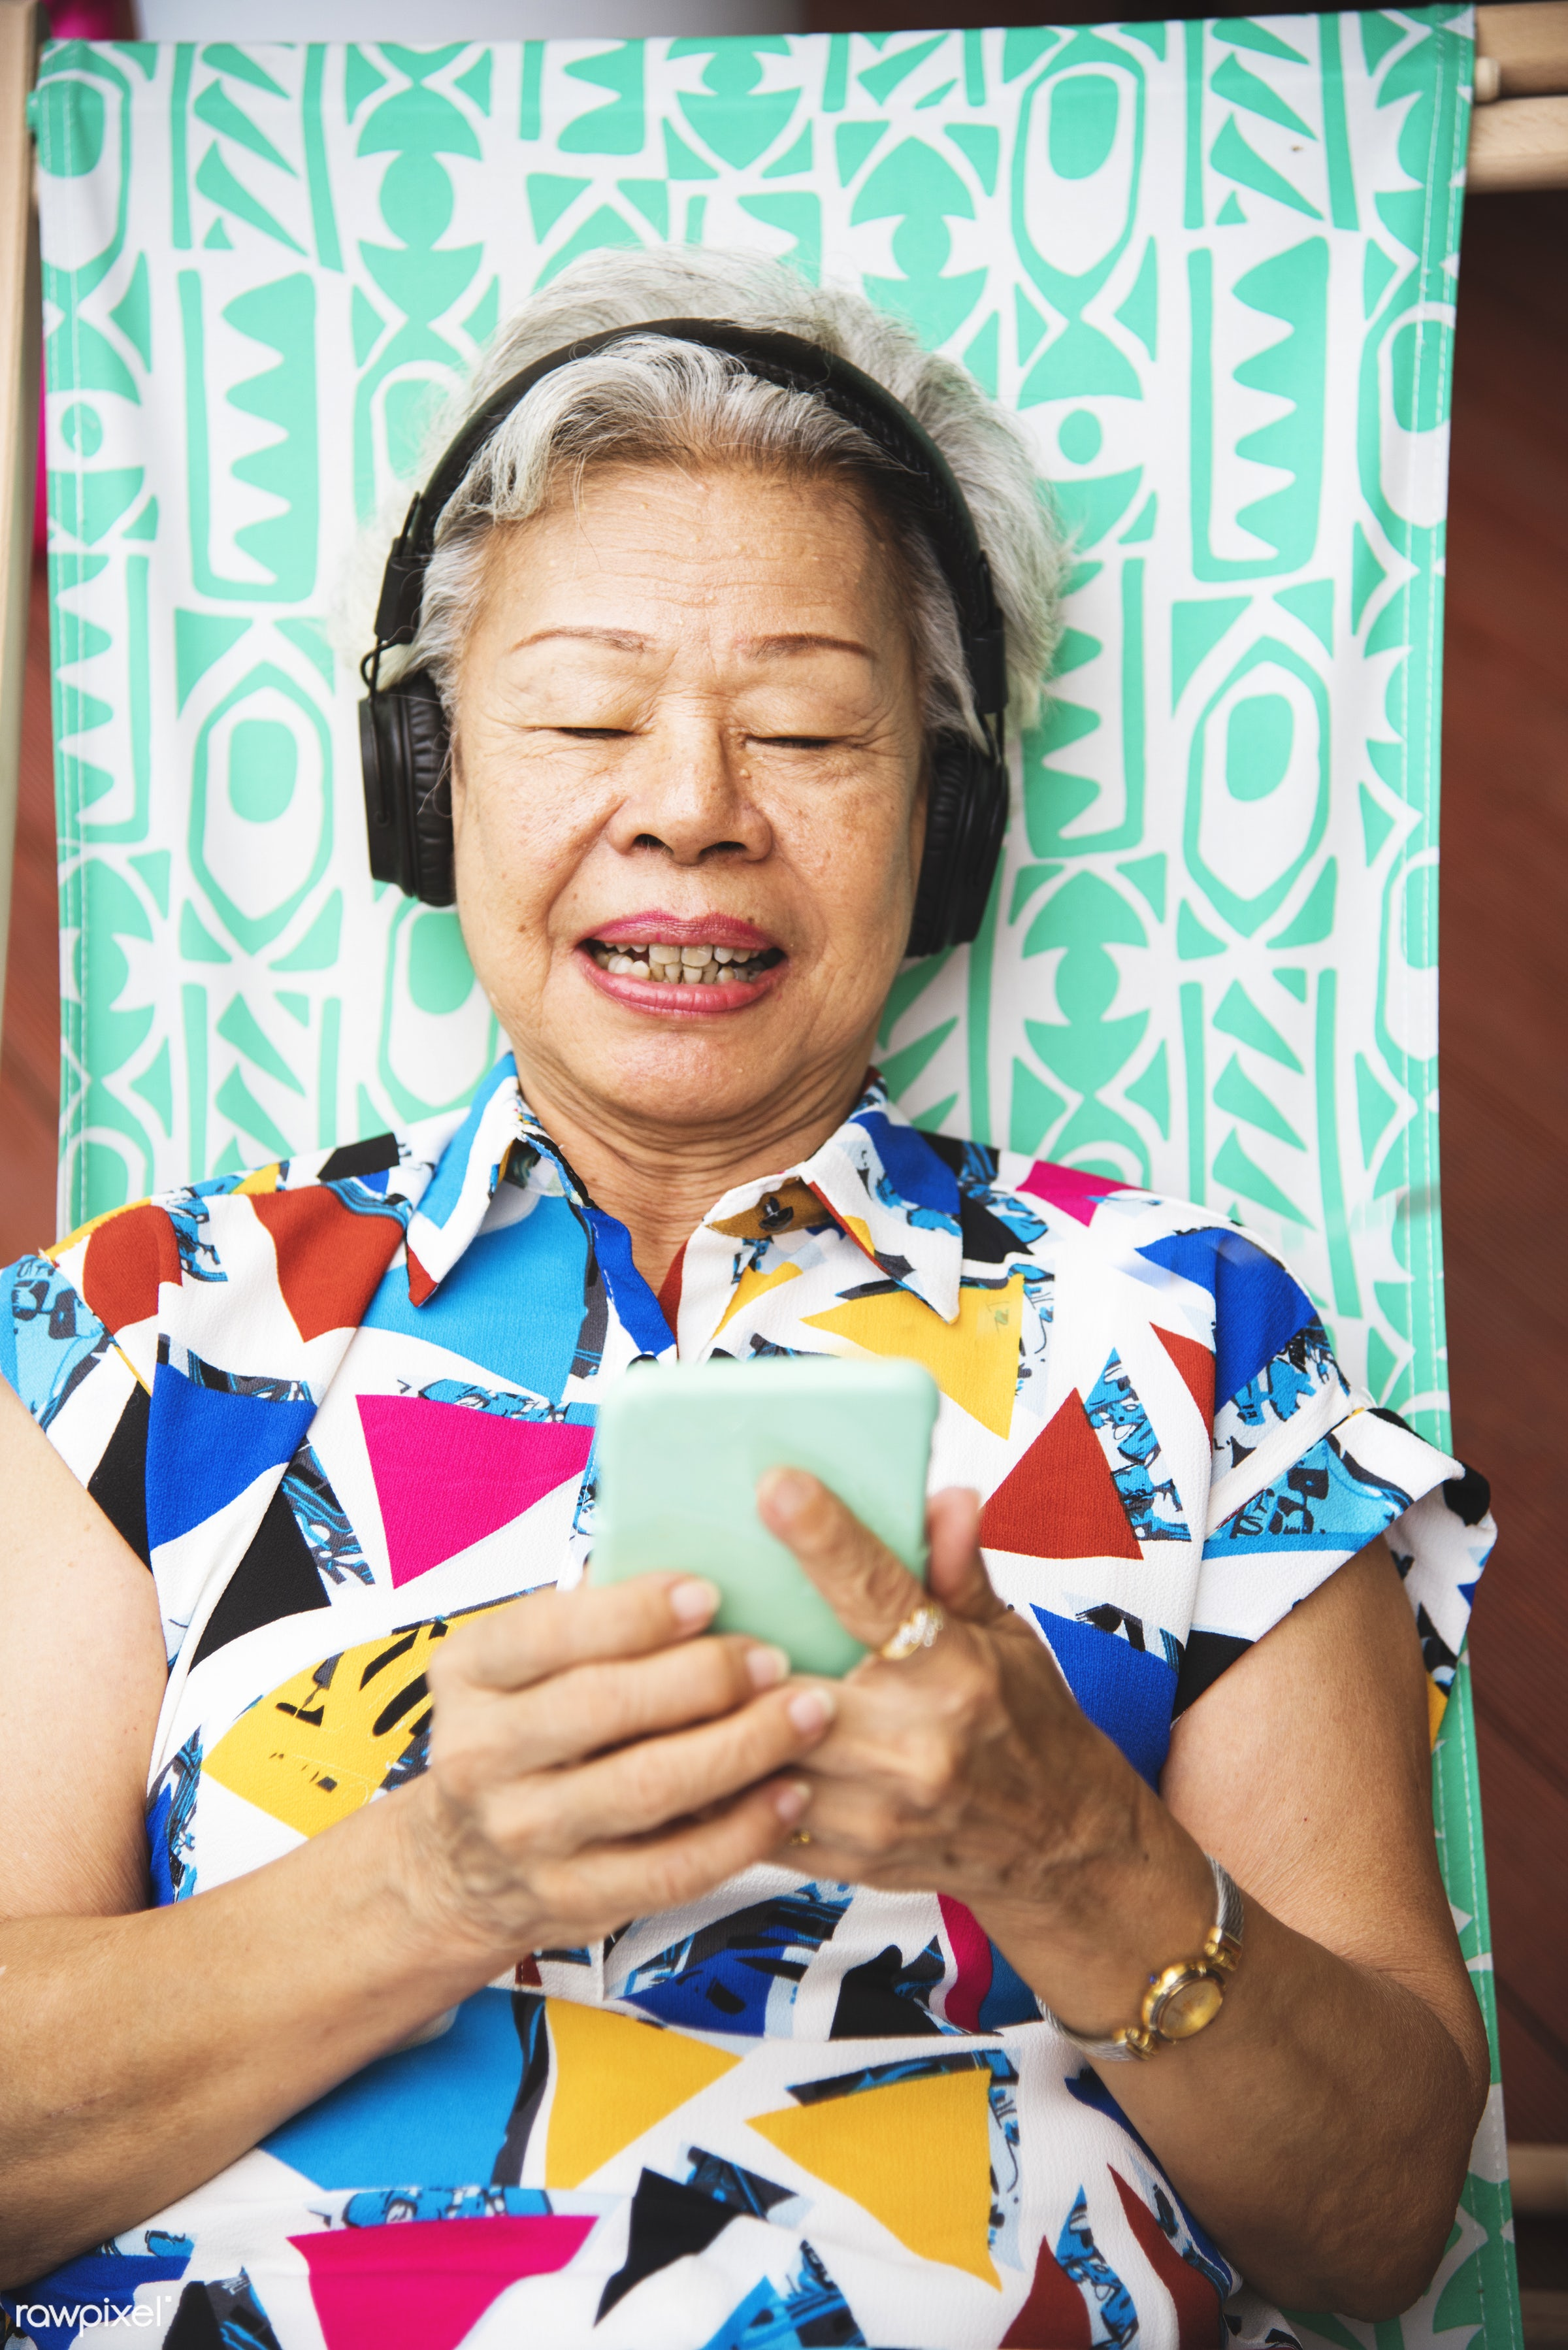 technology, asian ethnicity, casual, mobile phone, cheerful, smiling, music, leisure, adult, deck chair, headphones, lay...